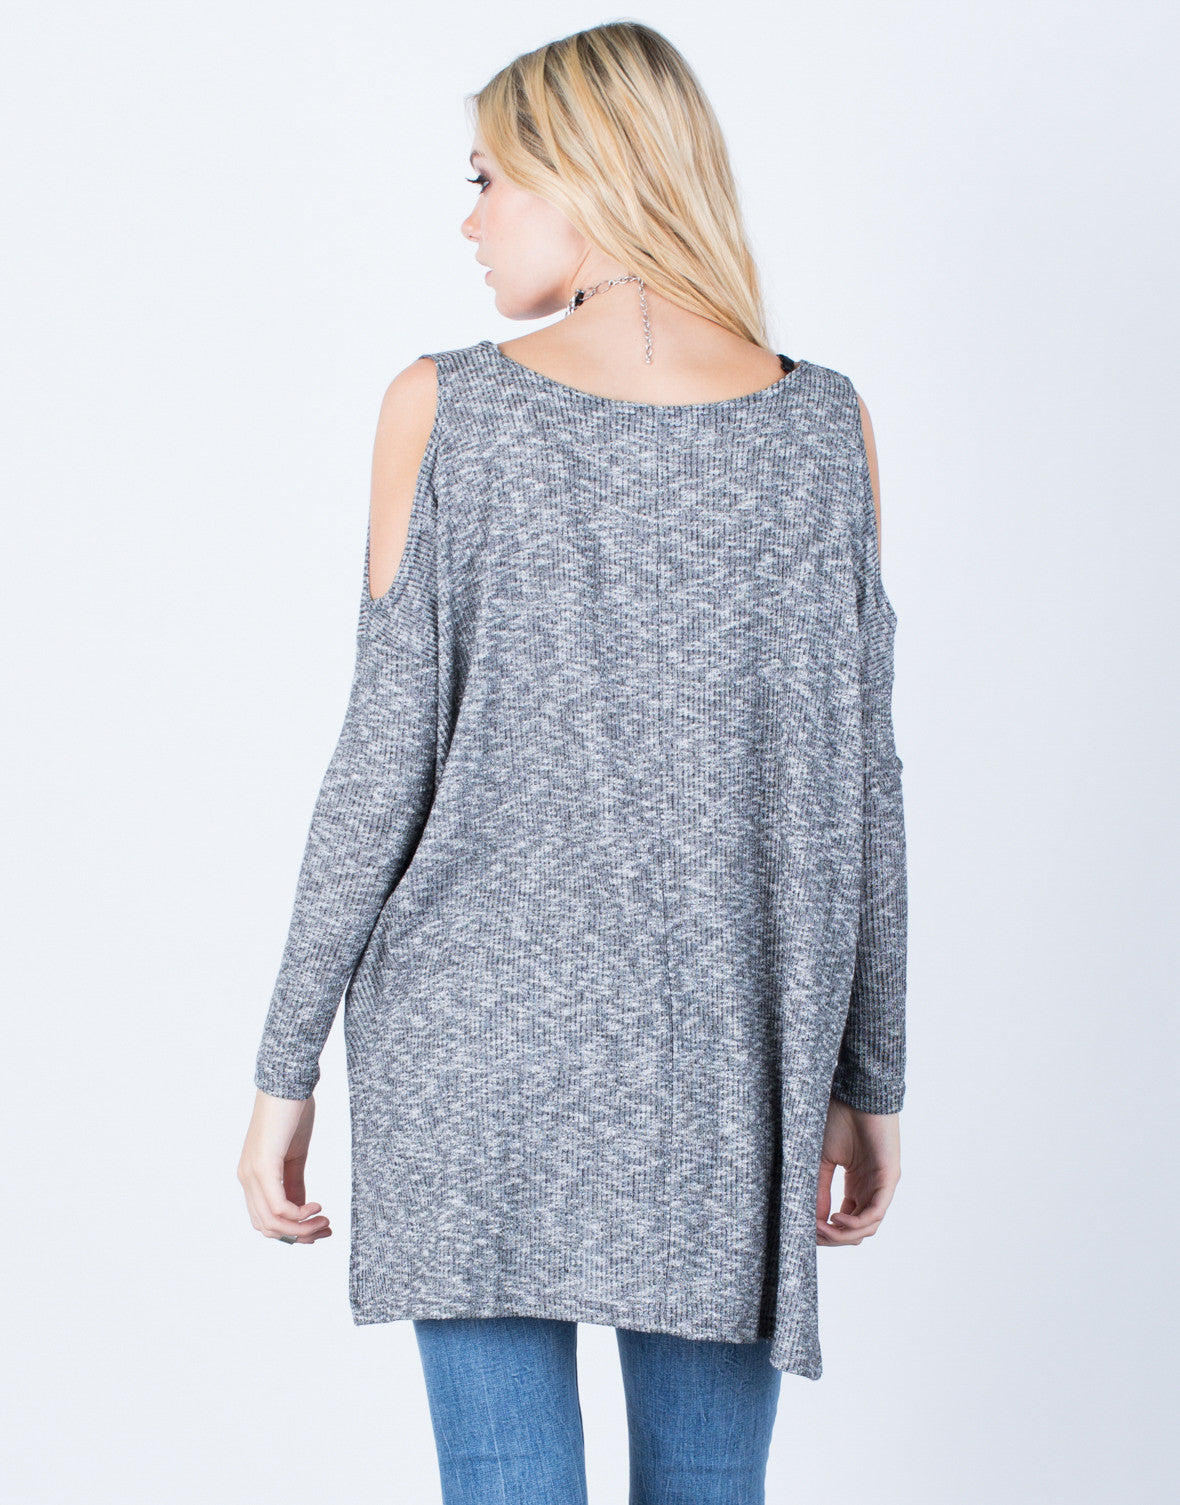 Back View of Oversize Cold Shoulder Top